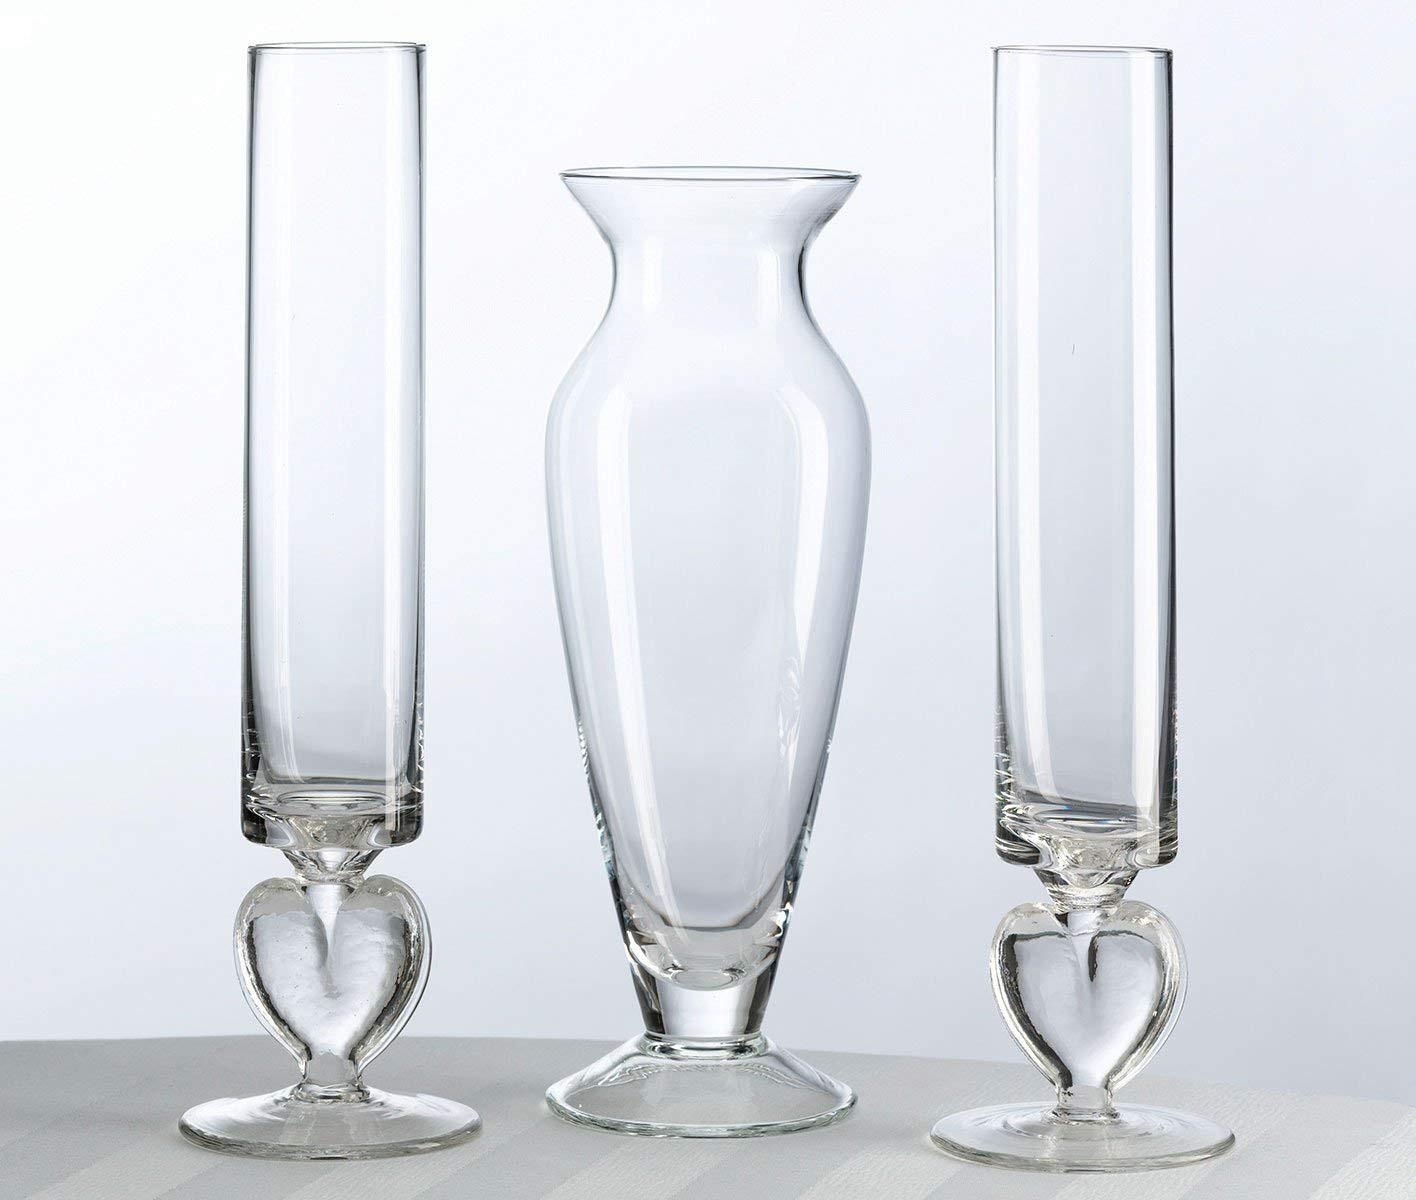 waterford crystal vase small of amazon com lillian rose unity sand ceremony wedding vase set home intended for amazon com lillian rose unity sand ceremony wedding vase set home kitchen